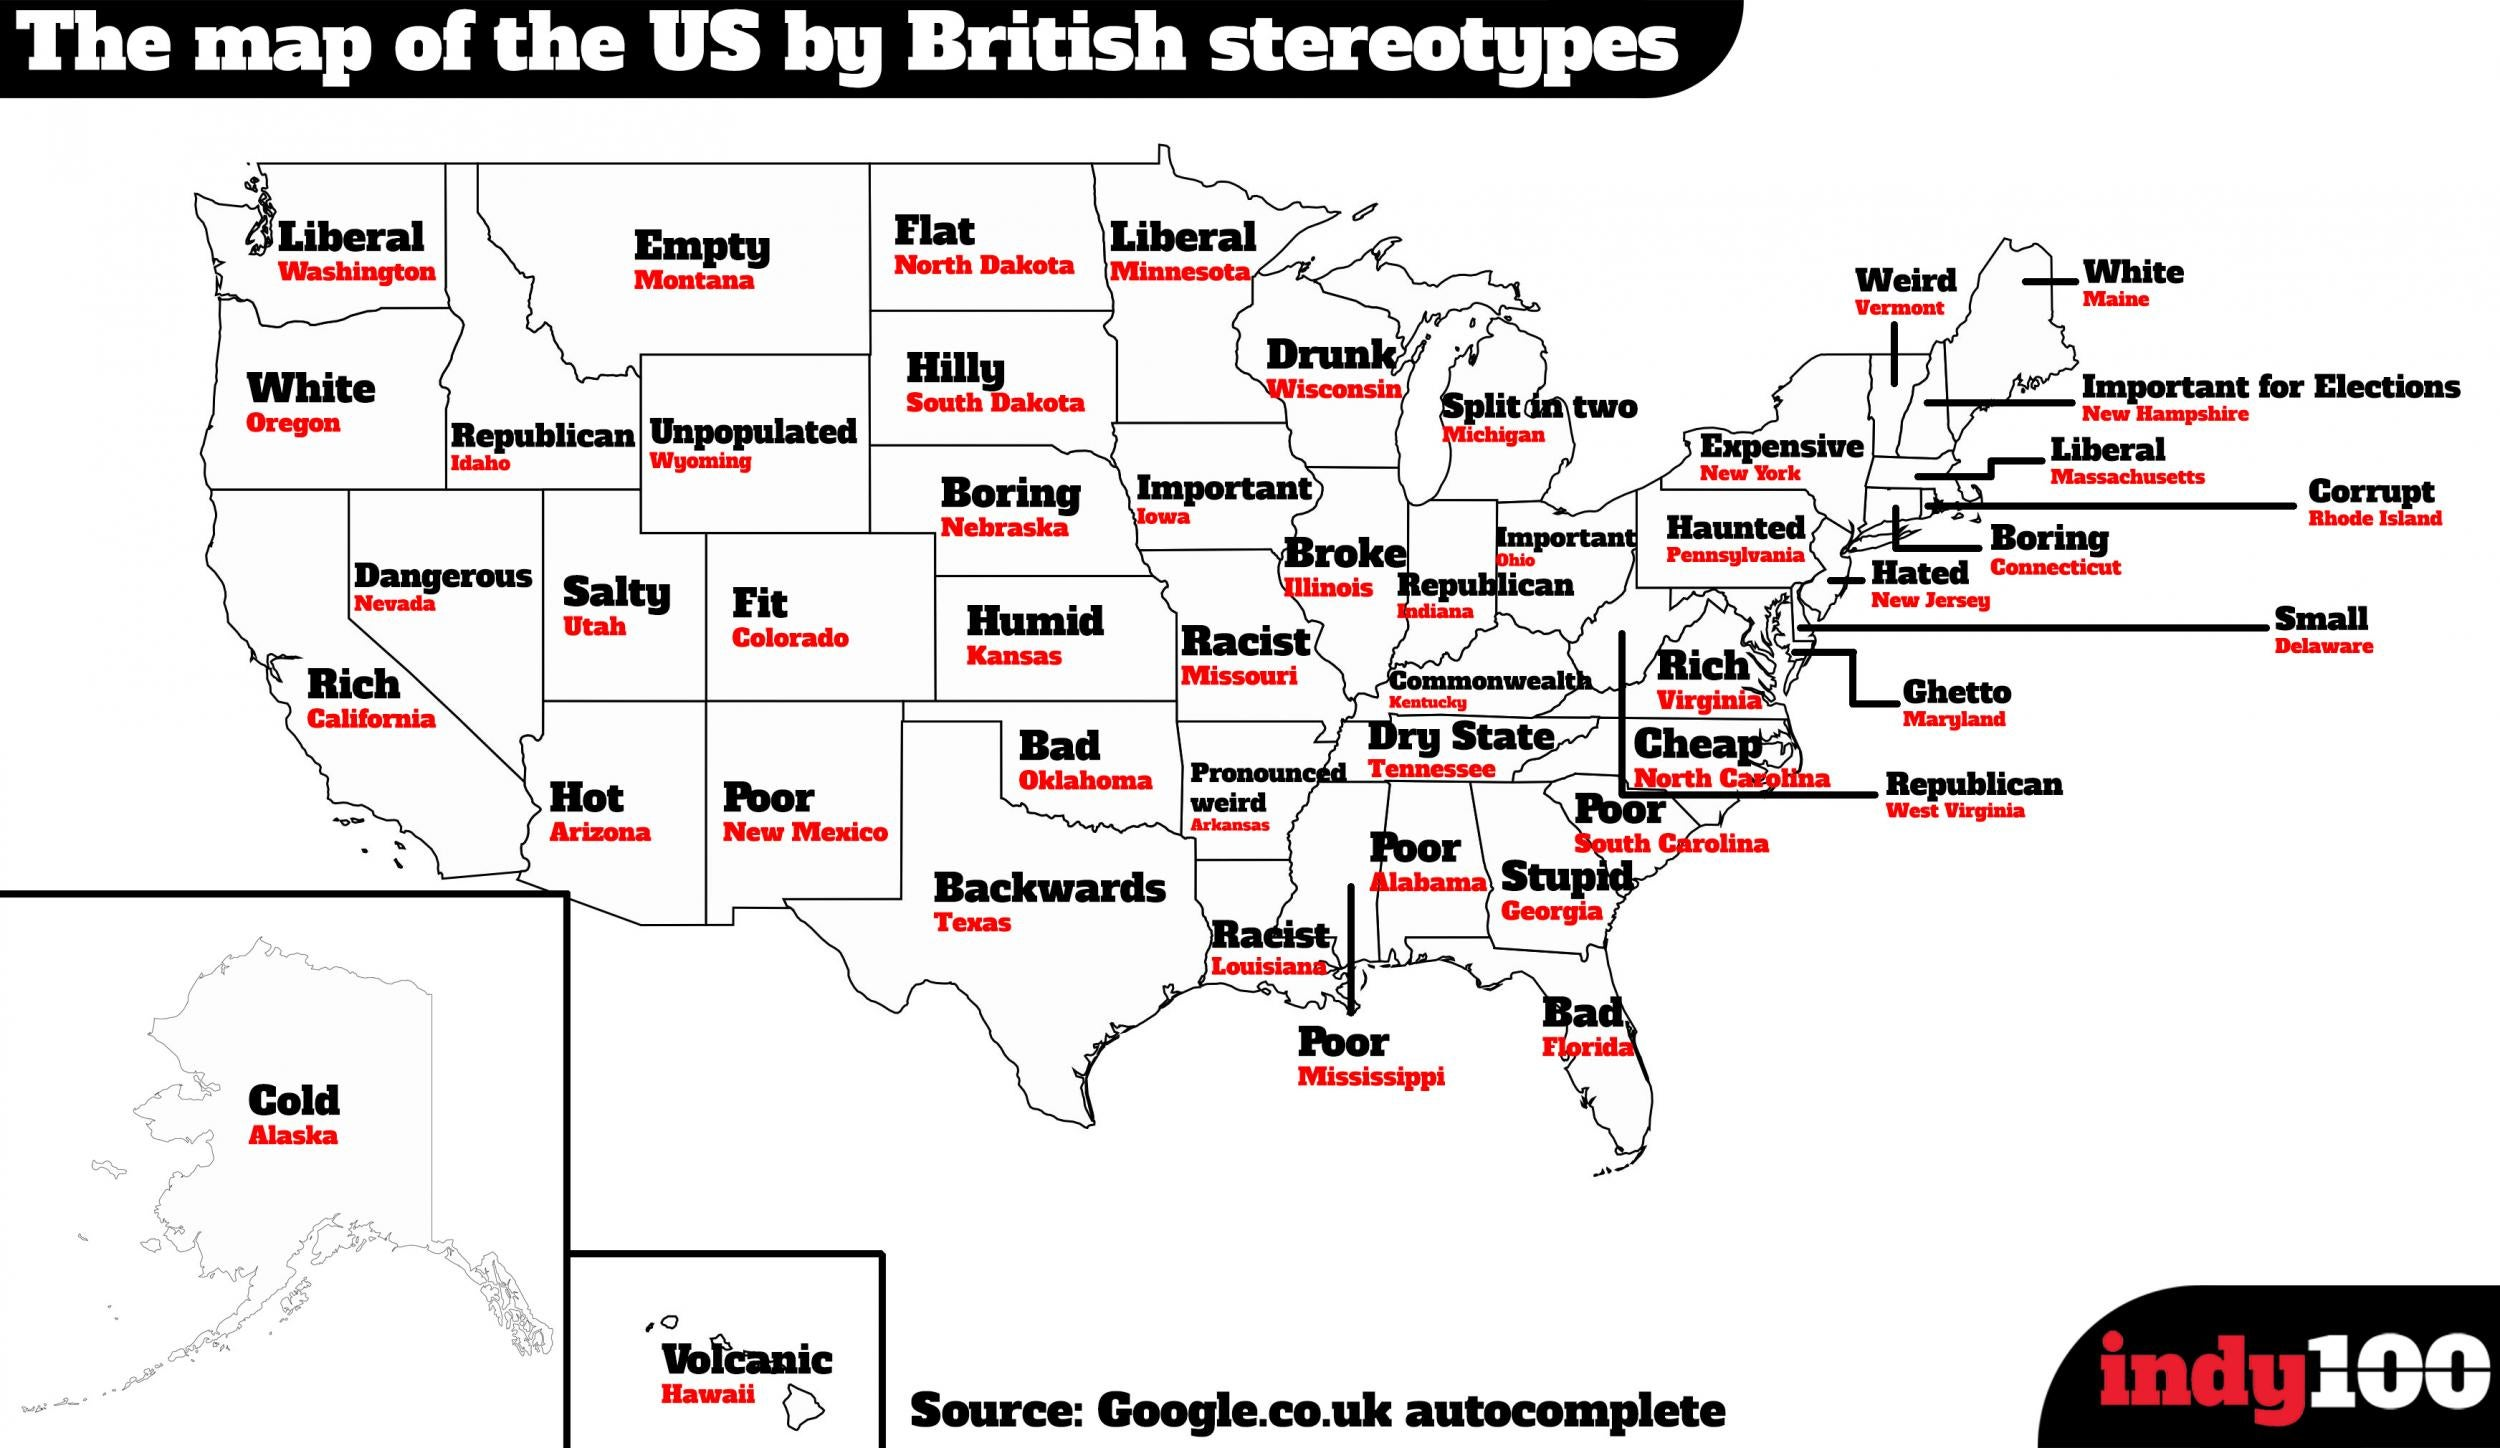 The stereotype map of America according to Brits | indy100